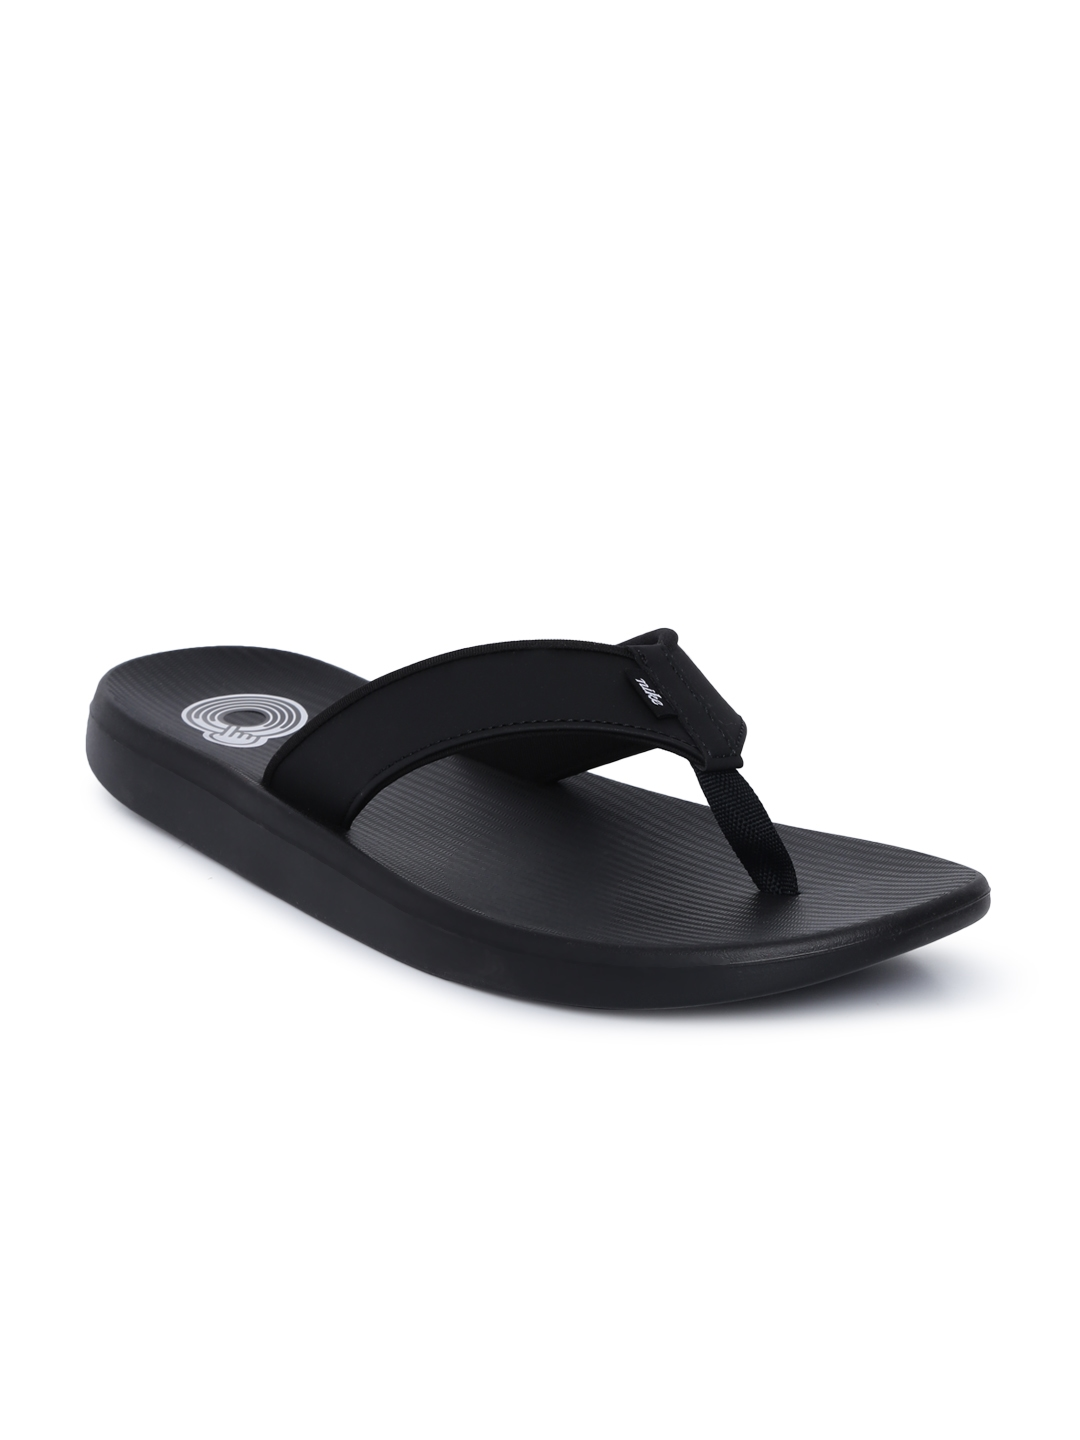 7fa1e0a0a Buy Nike Men Black KEPA KAI Solid Thong Flip Flops - Flip Flops for ...